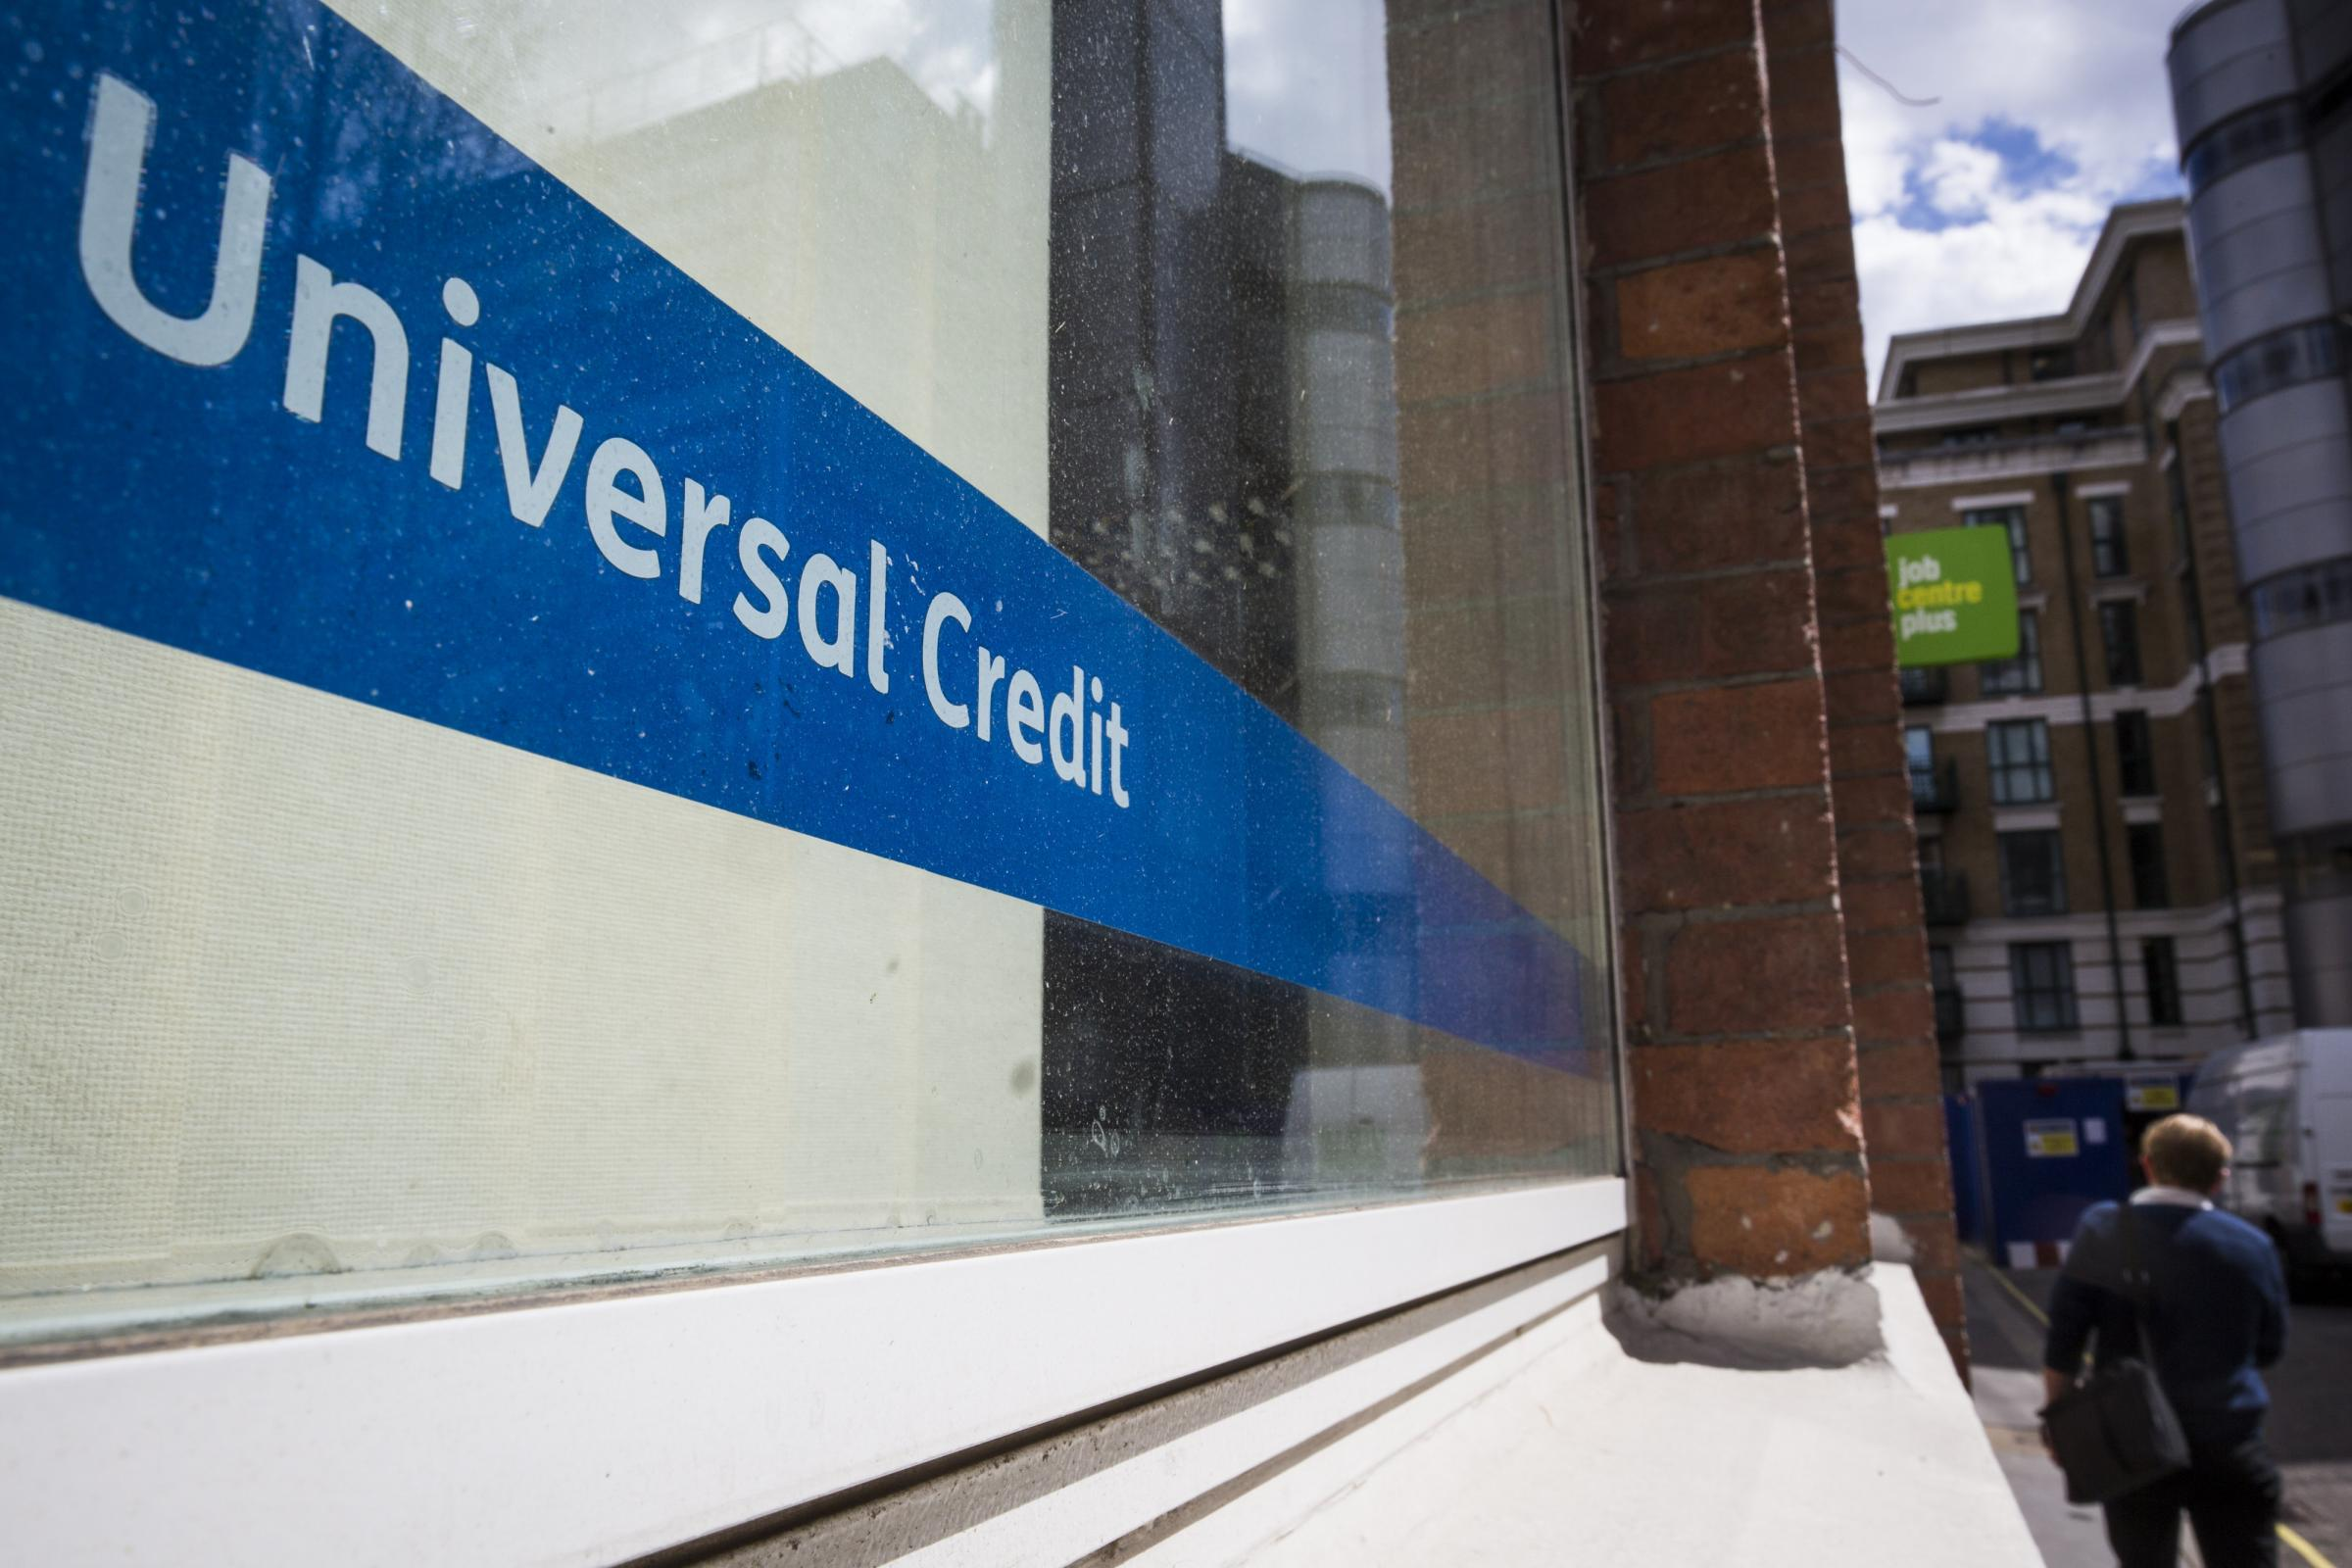 Bradford tops the region for the number of people claiming Universal Credit, new figures reveal